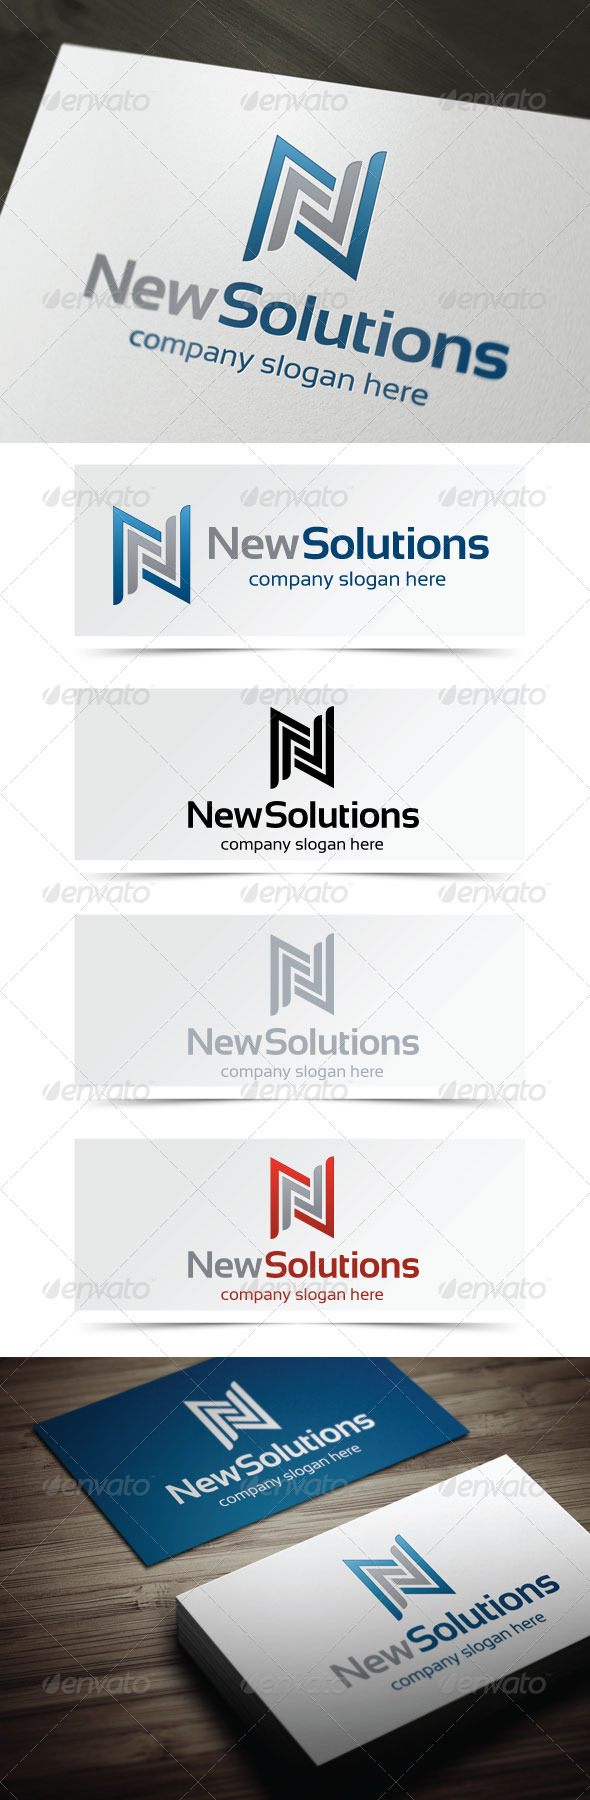 New Solutions - Letters Logo Templates